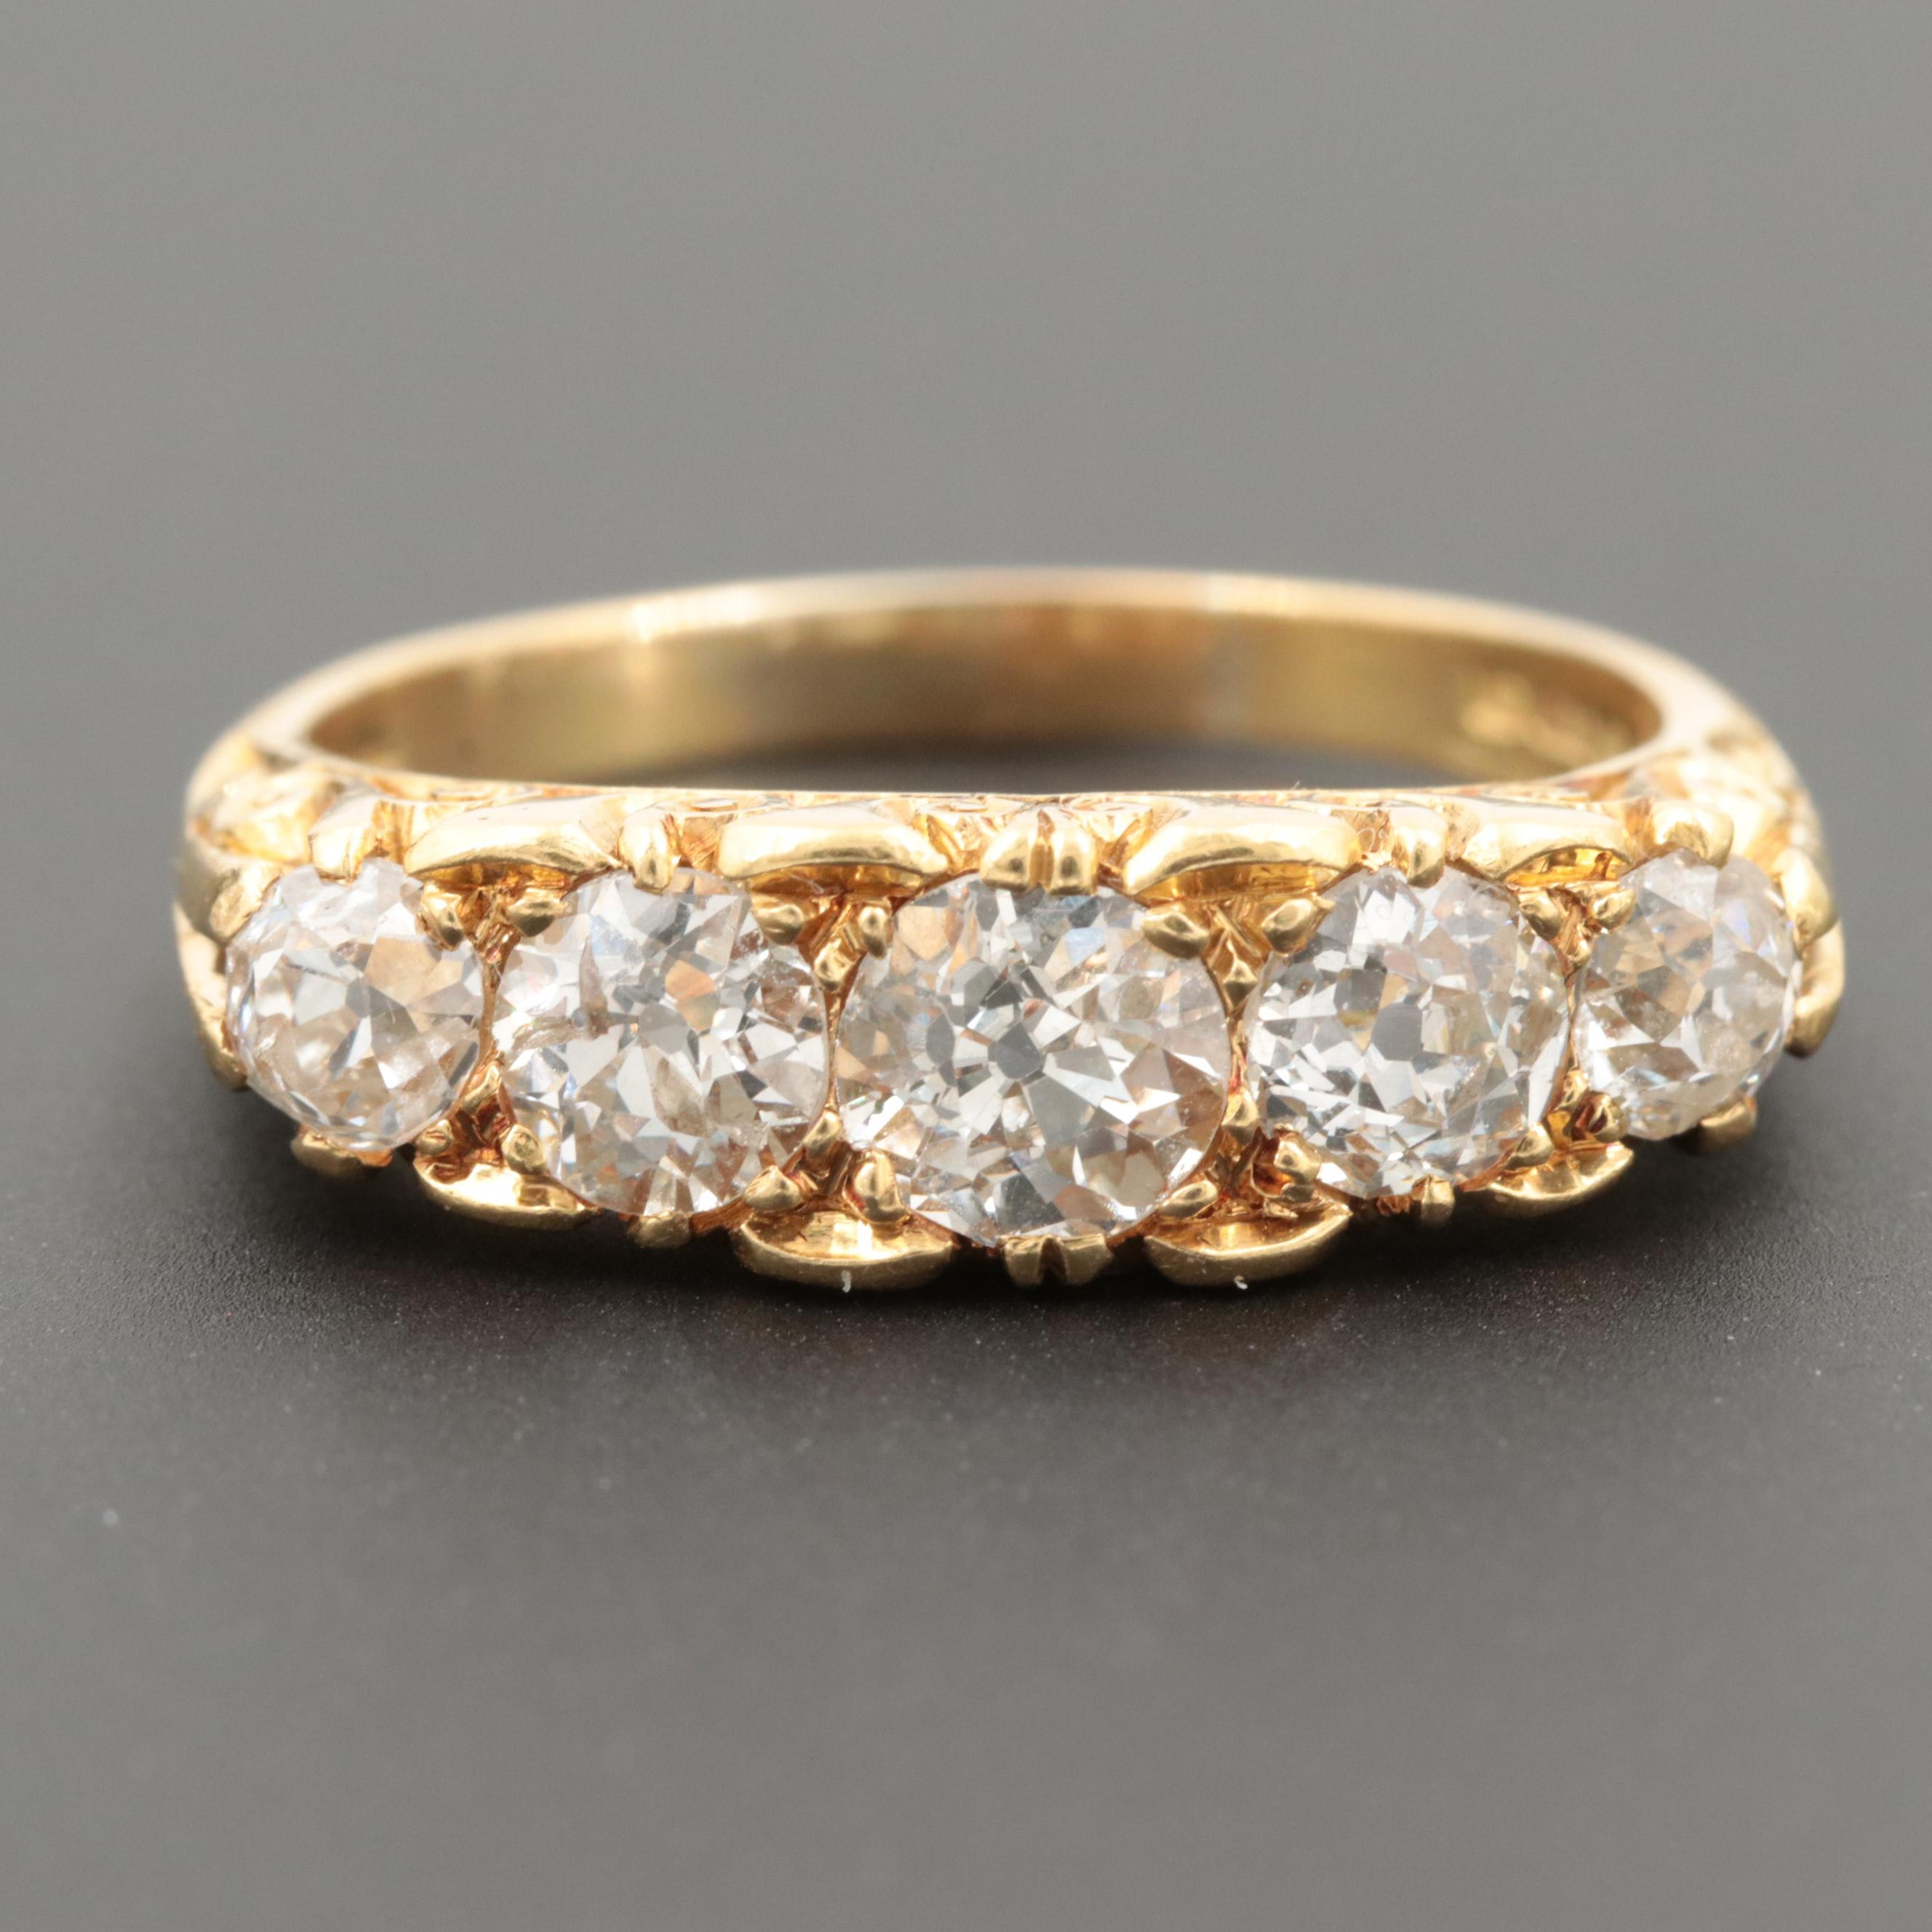 Victorian Style 18K Yellow Gold 1.45 CTW Diamond Ring